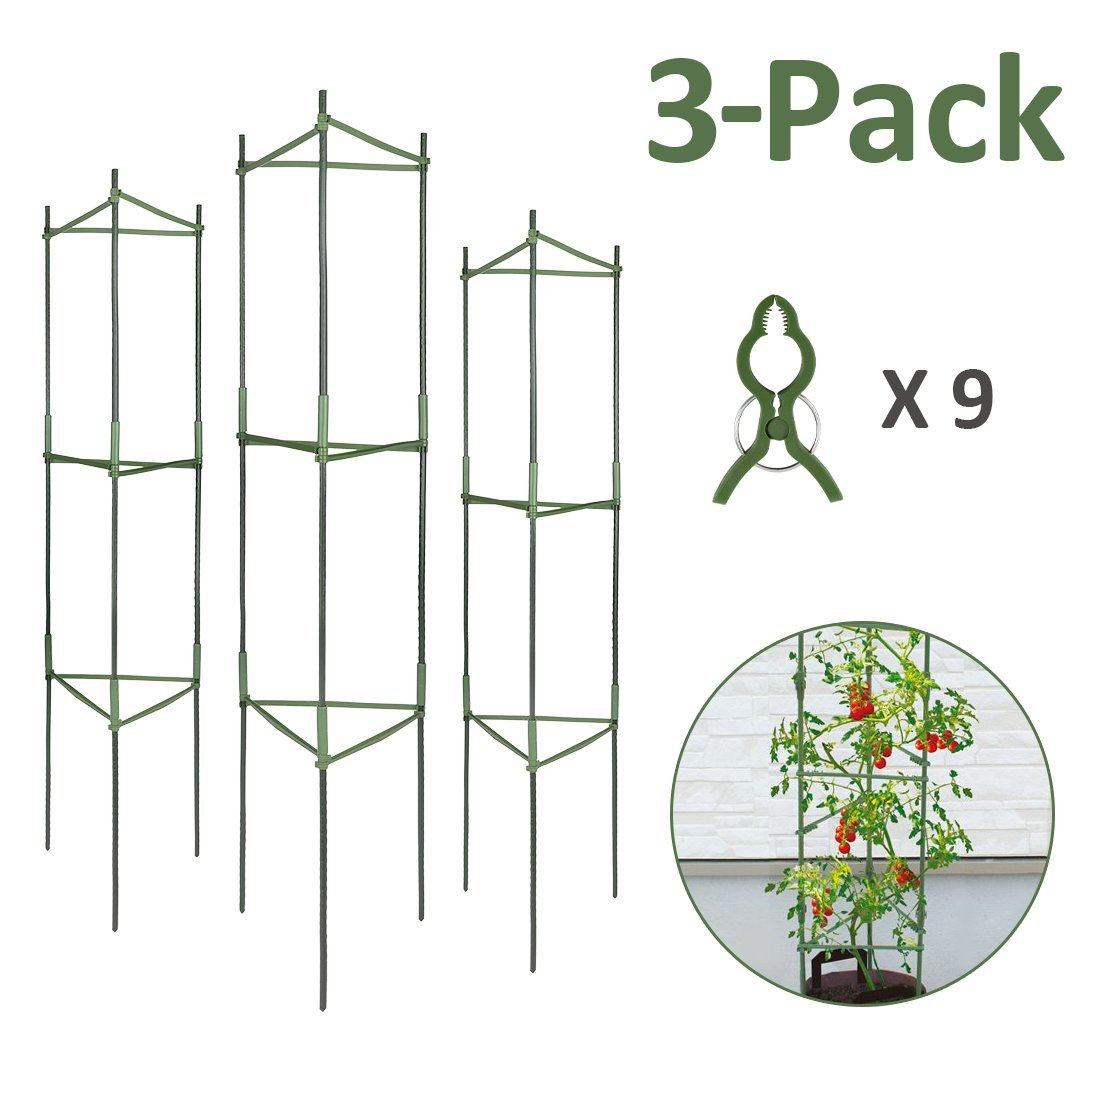 GROWNEER 3-Pack Plant Cages Assembled Tomato Garden Cages Stakes Vegetable Trellis, w/ 9Pcs Clips, for Vertical Climbing Plants by GROWNEER